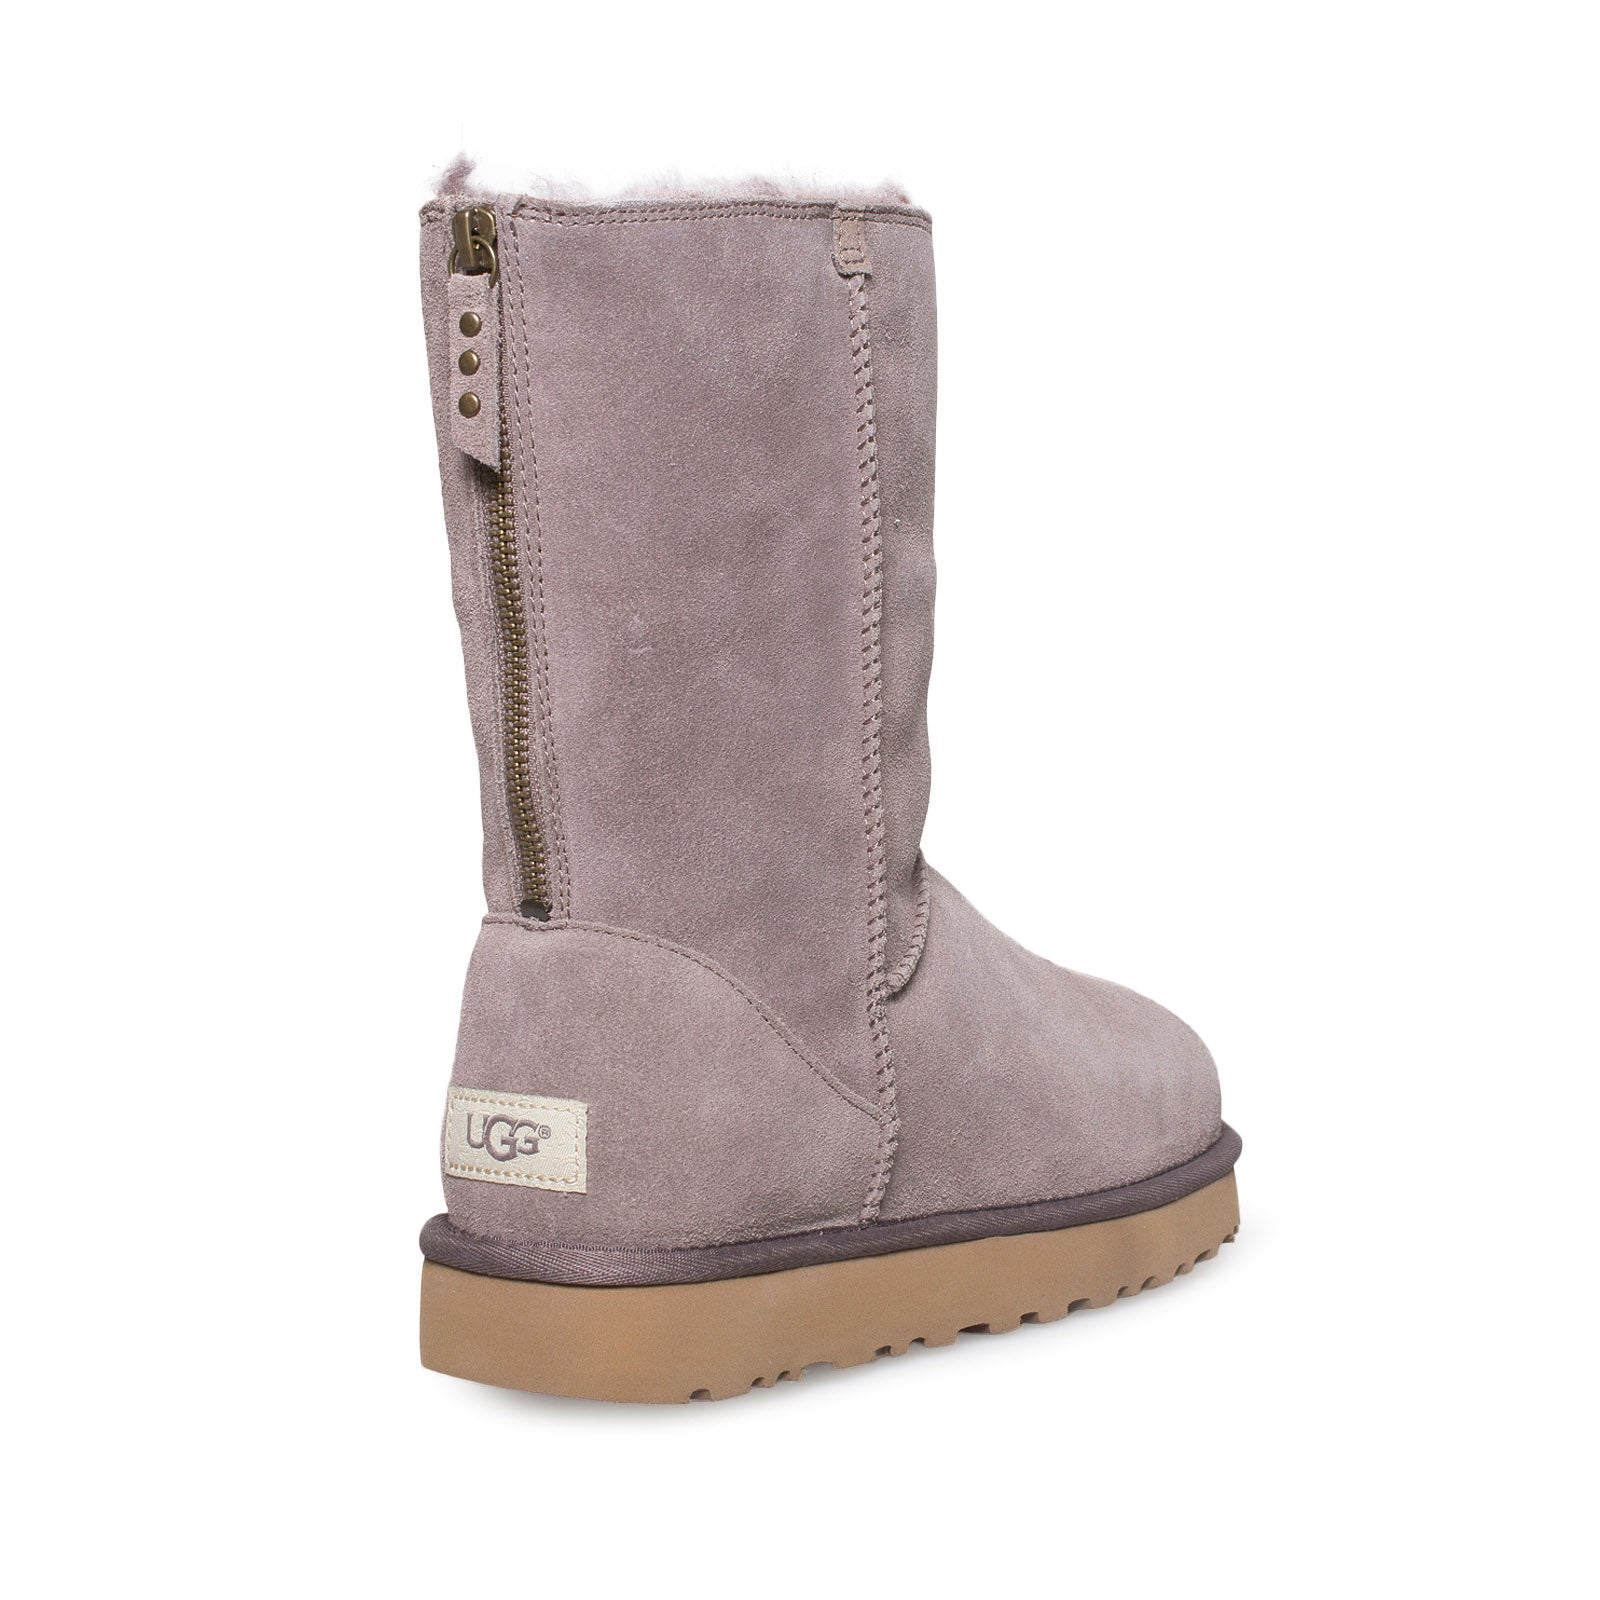 4ec14f122a0 UGG Classic Short Zip Suede Stormy Grey Boots